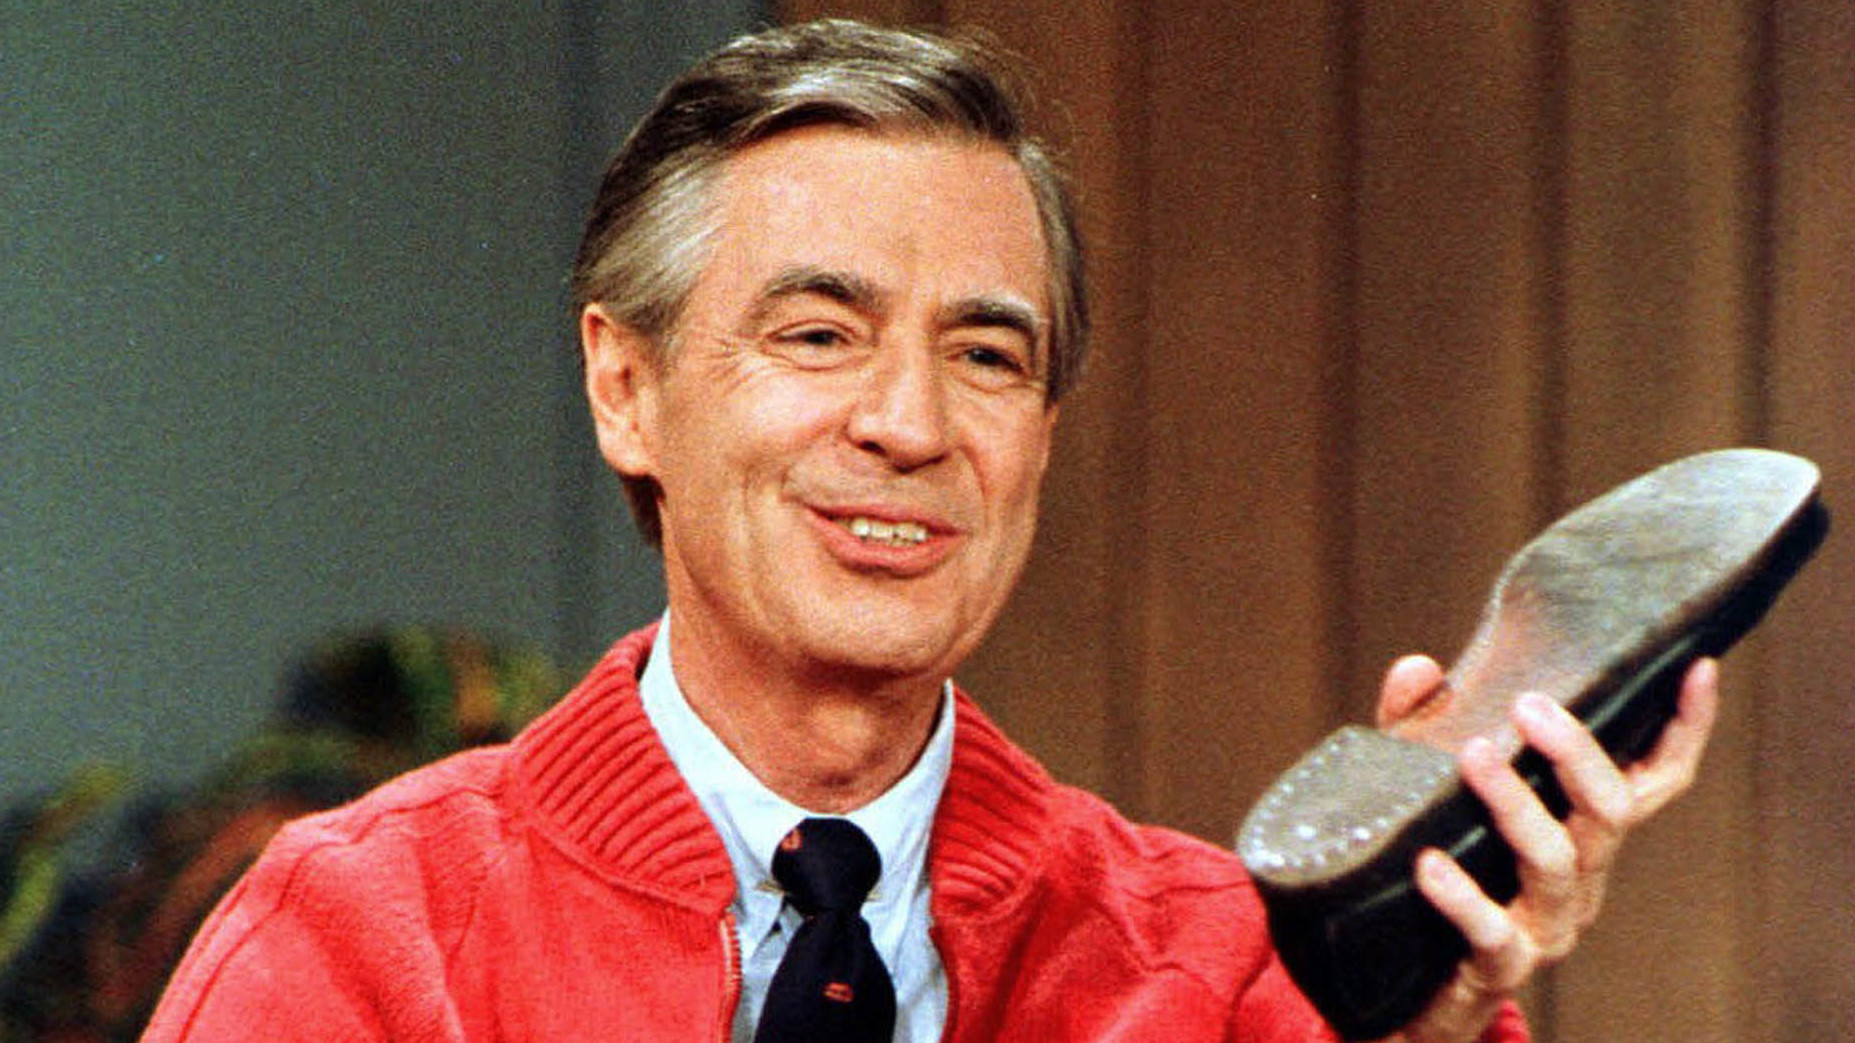 It S A Beautiful 50th Birthday For Mister Rogers Neighborhood Wvxu